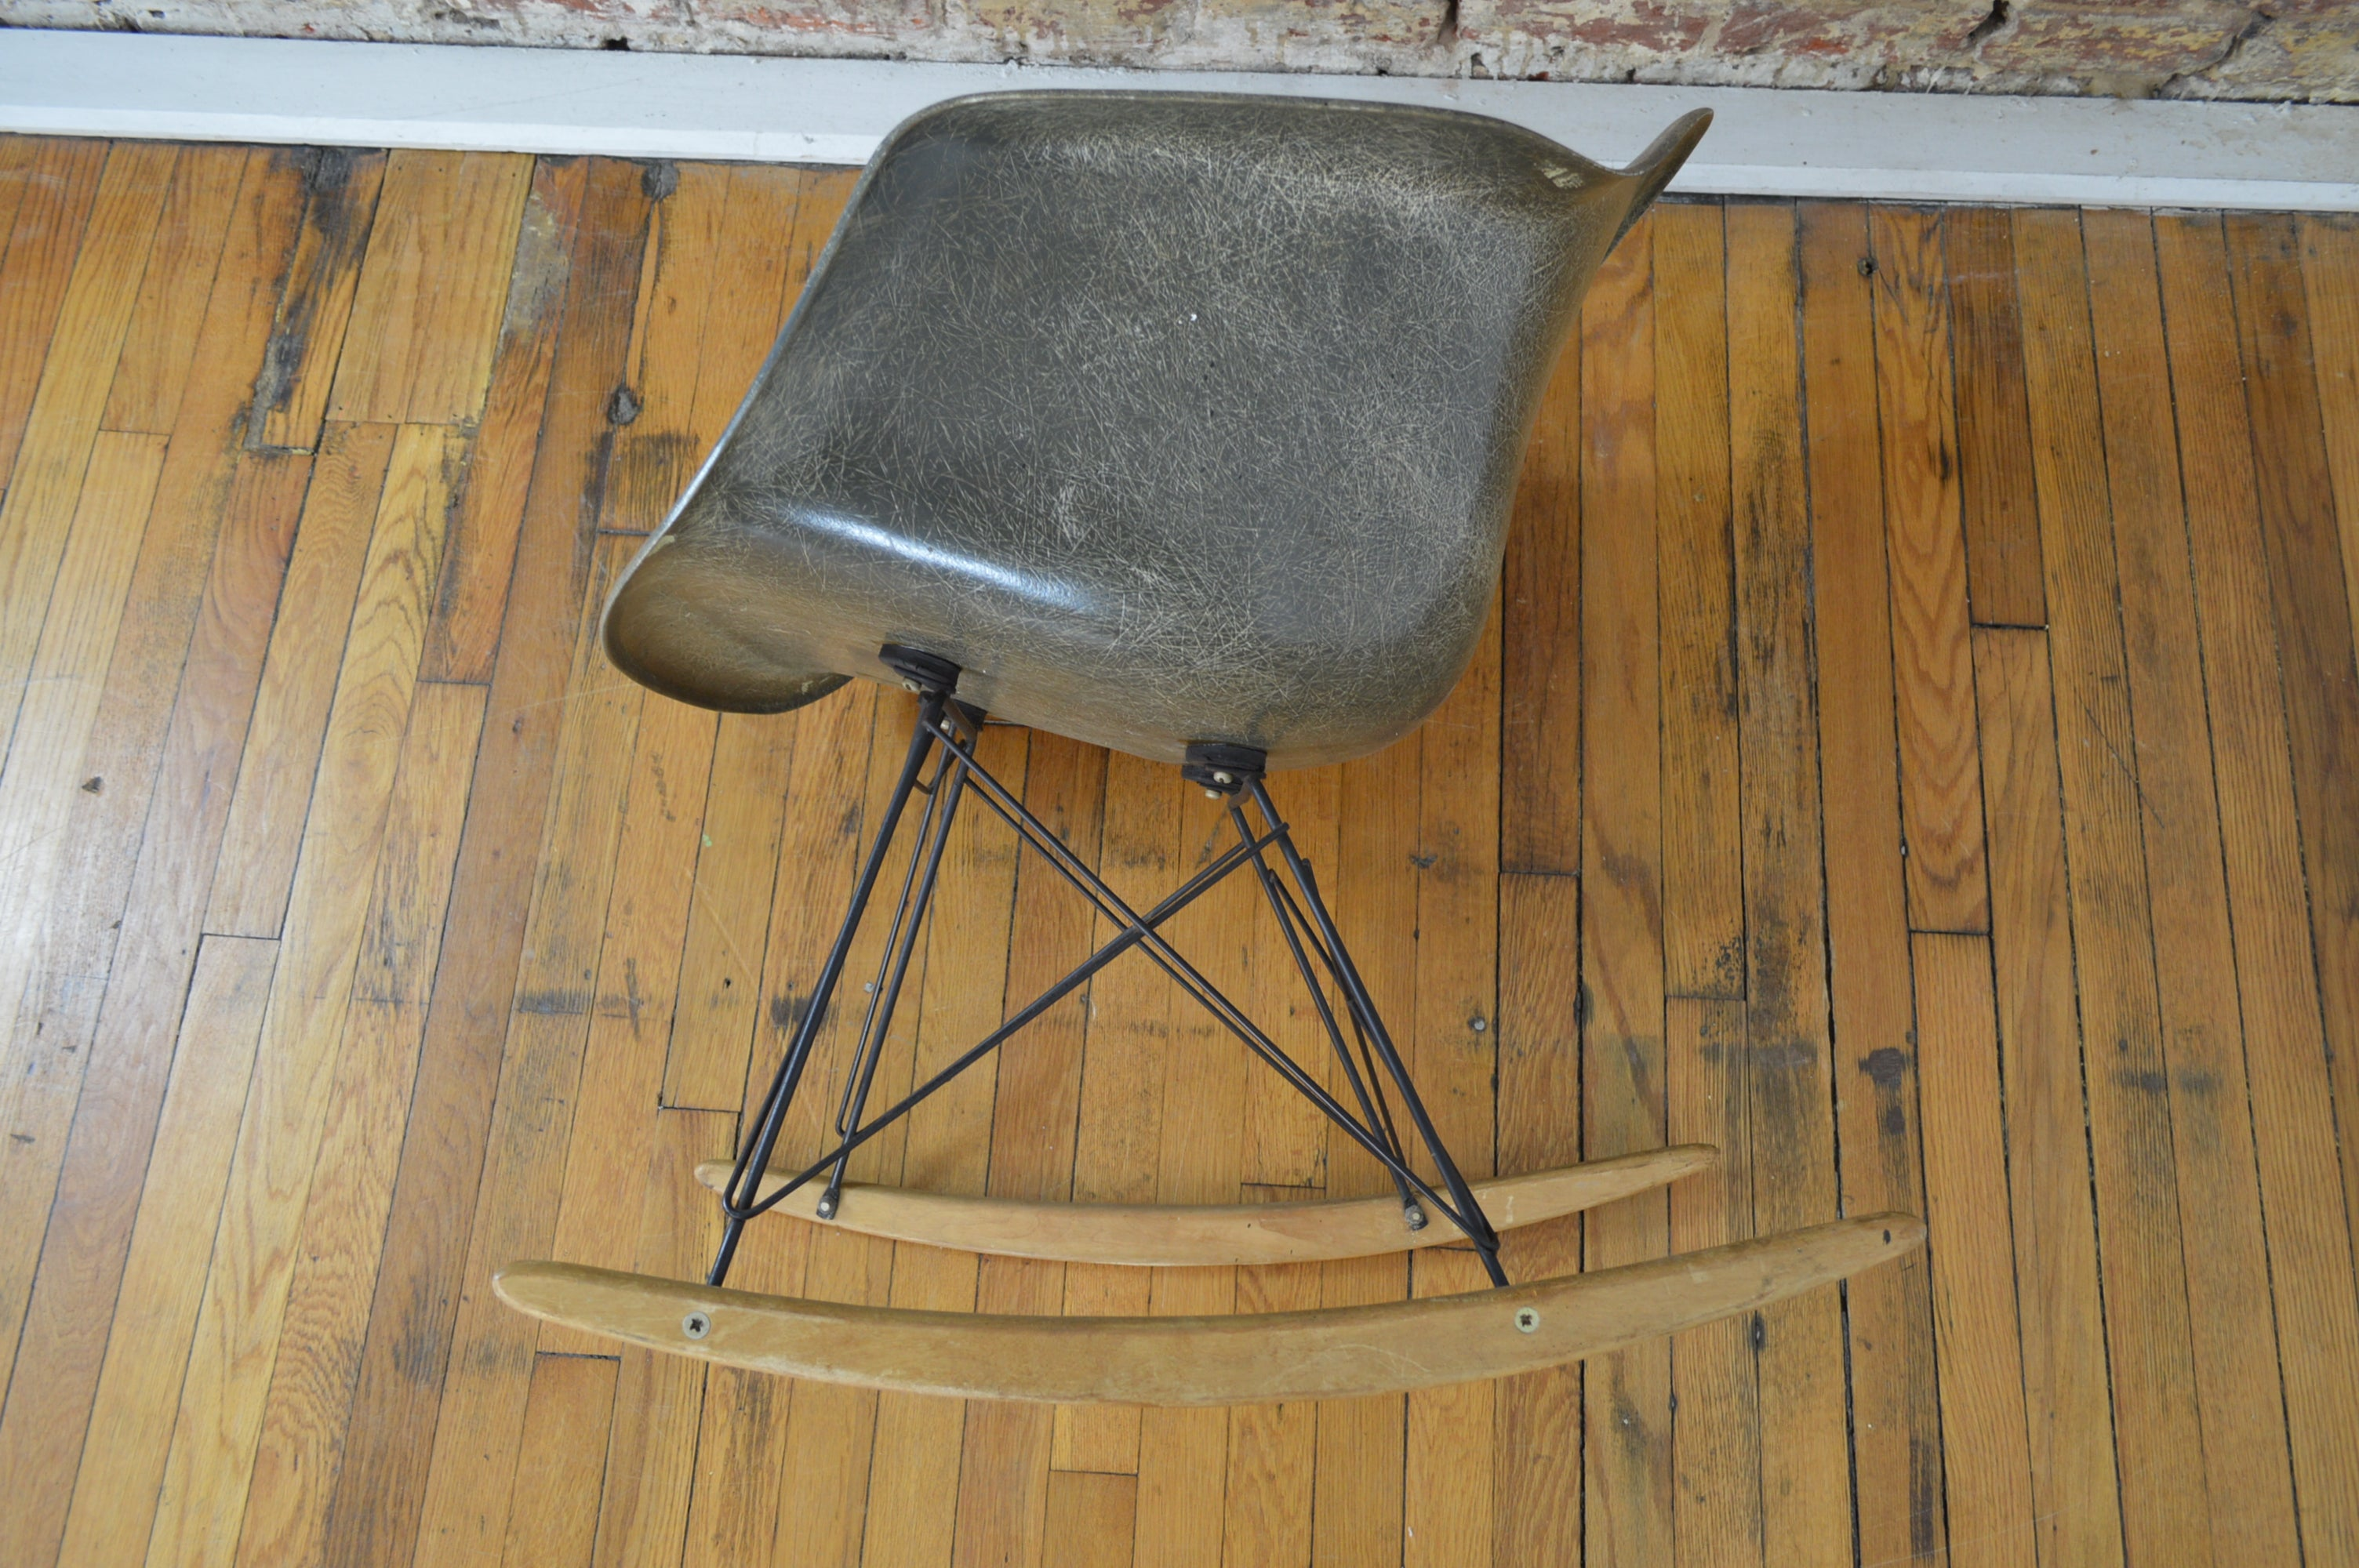 Sensational Charles Ray Eames For Herman Miller Mid Century Modern Rocking Chair Alphanode Cool Chair Designs And Ideas Alphanodeonline